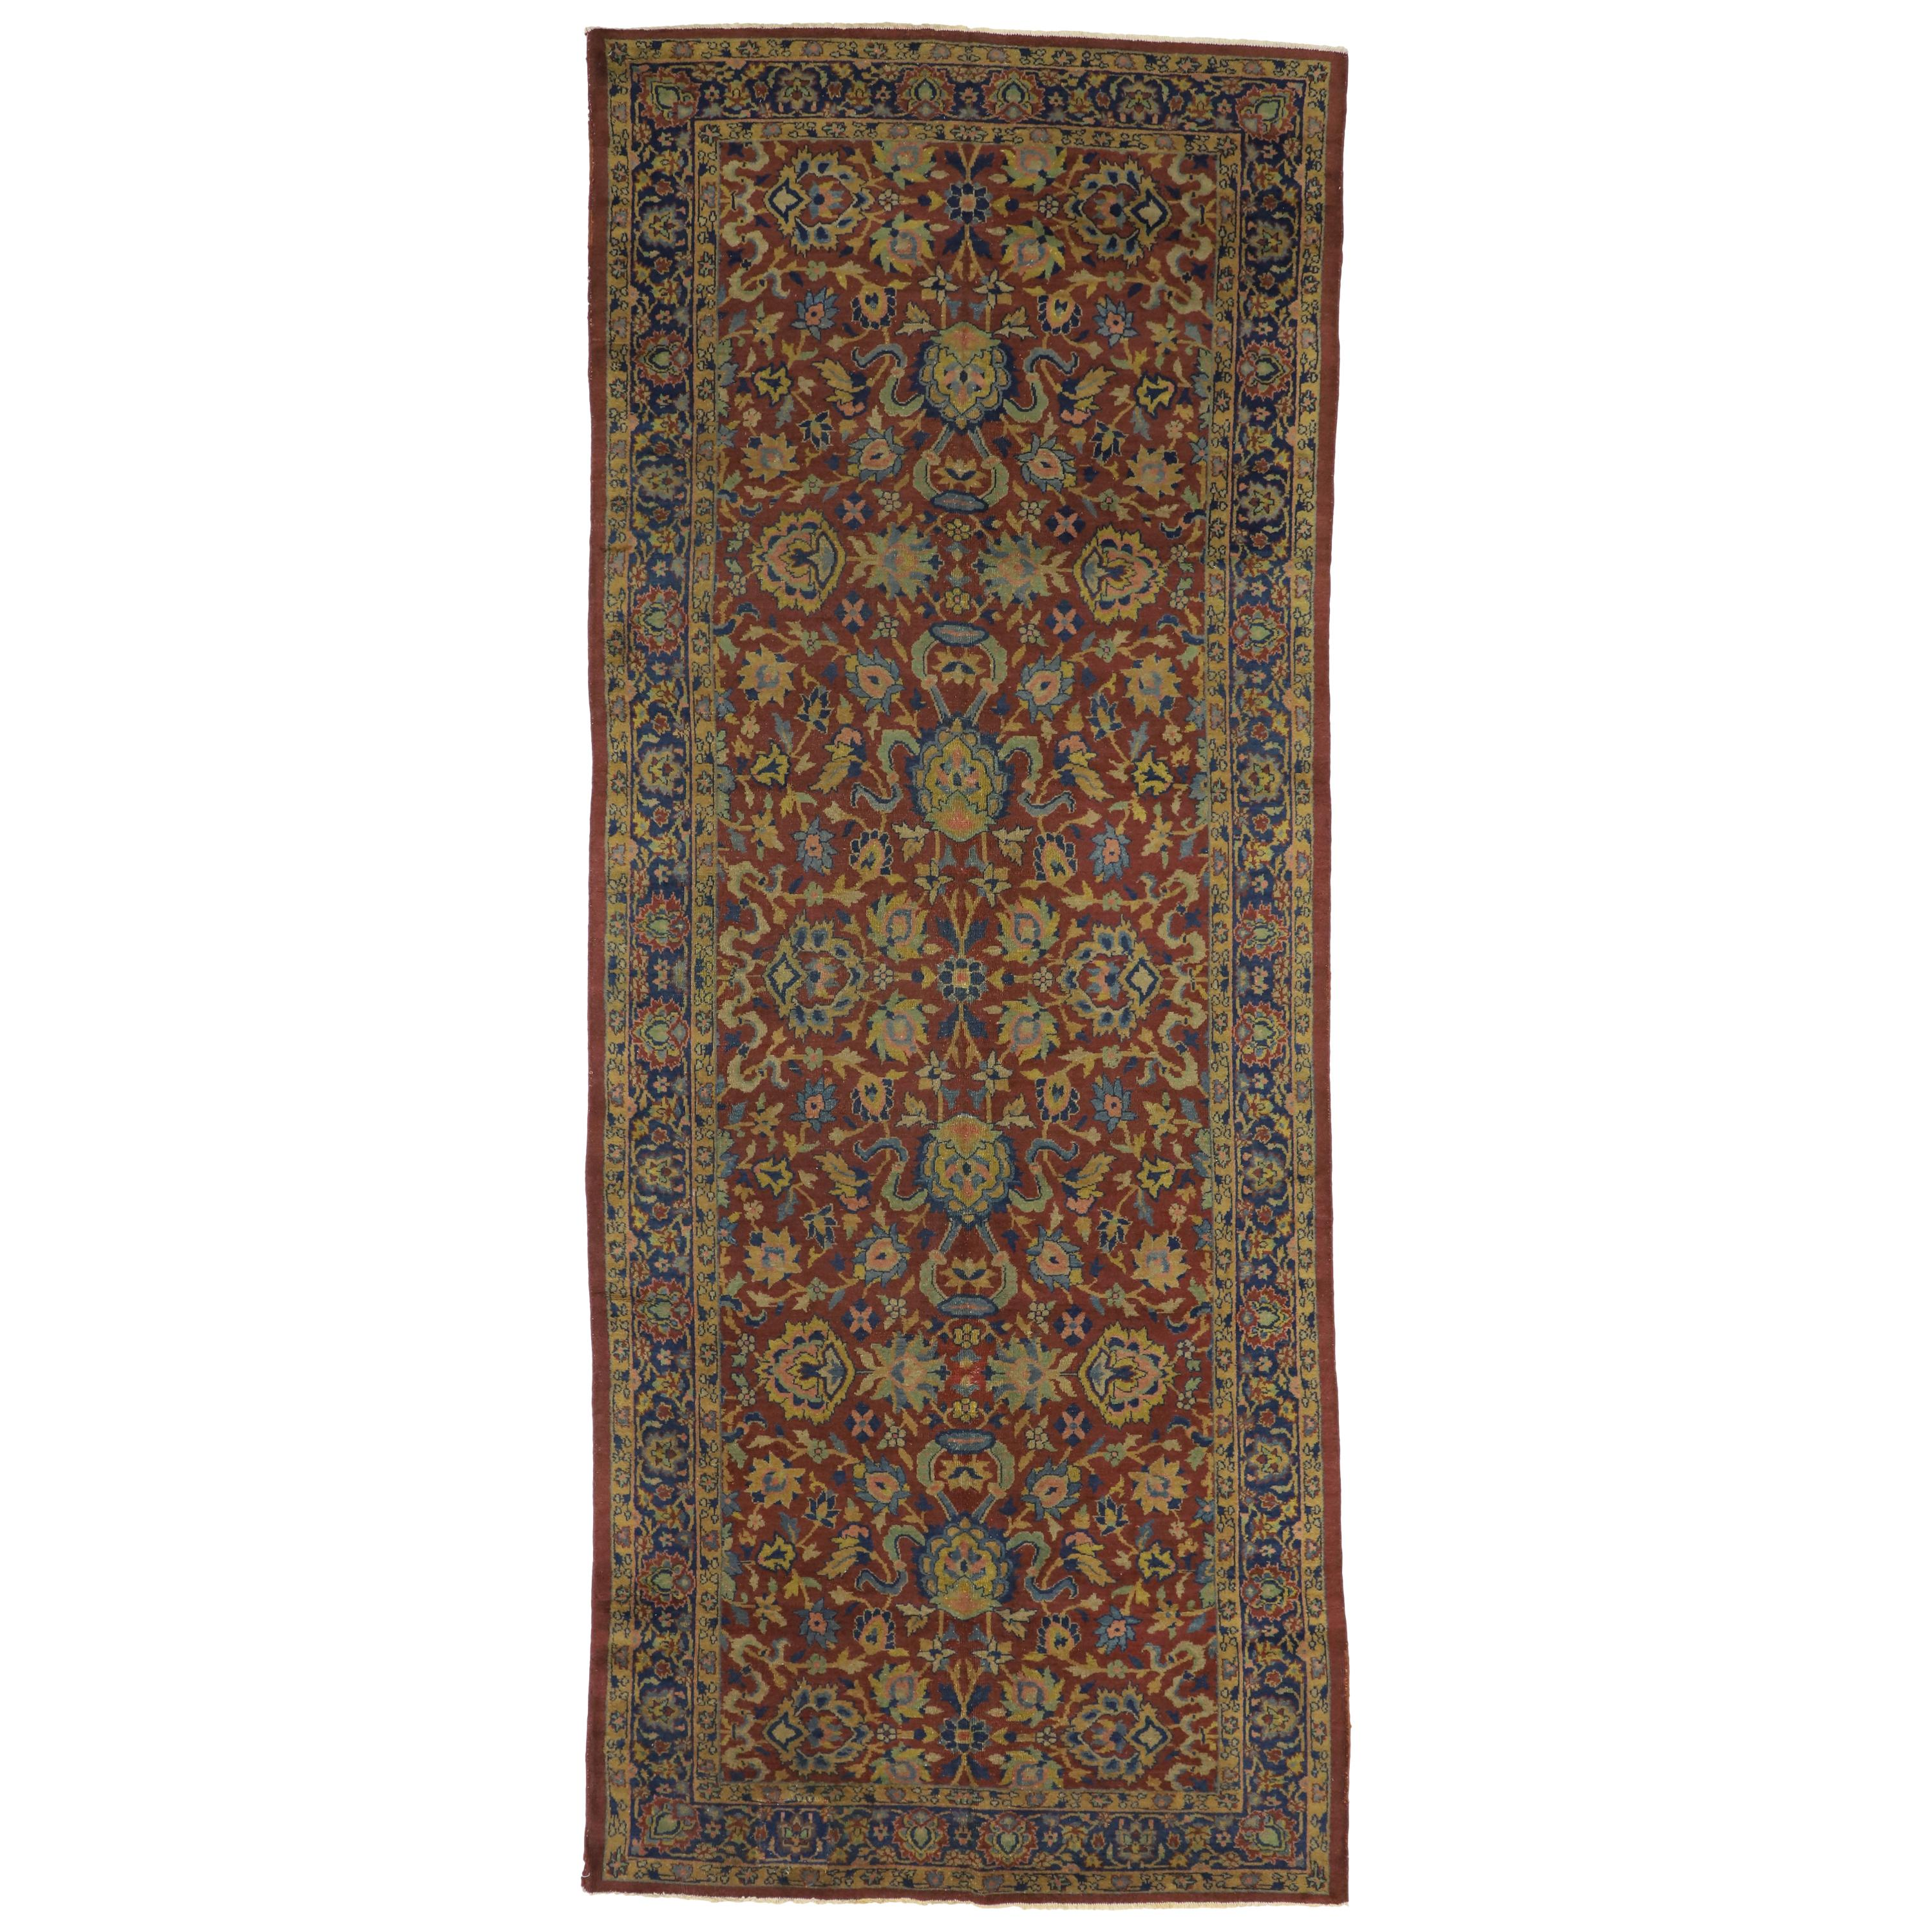 Antique Indian Agra William Morris Inspired Gallery Rug with Arts & Crafts Style